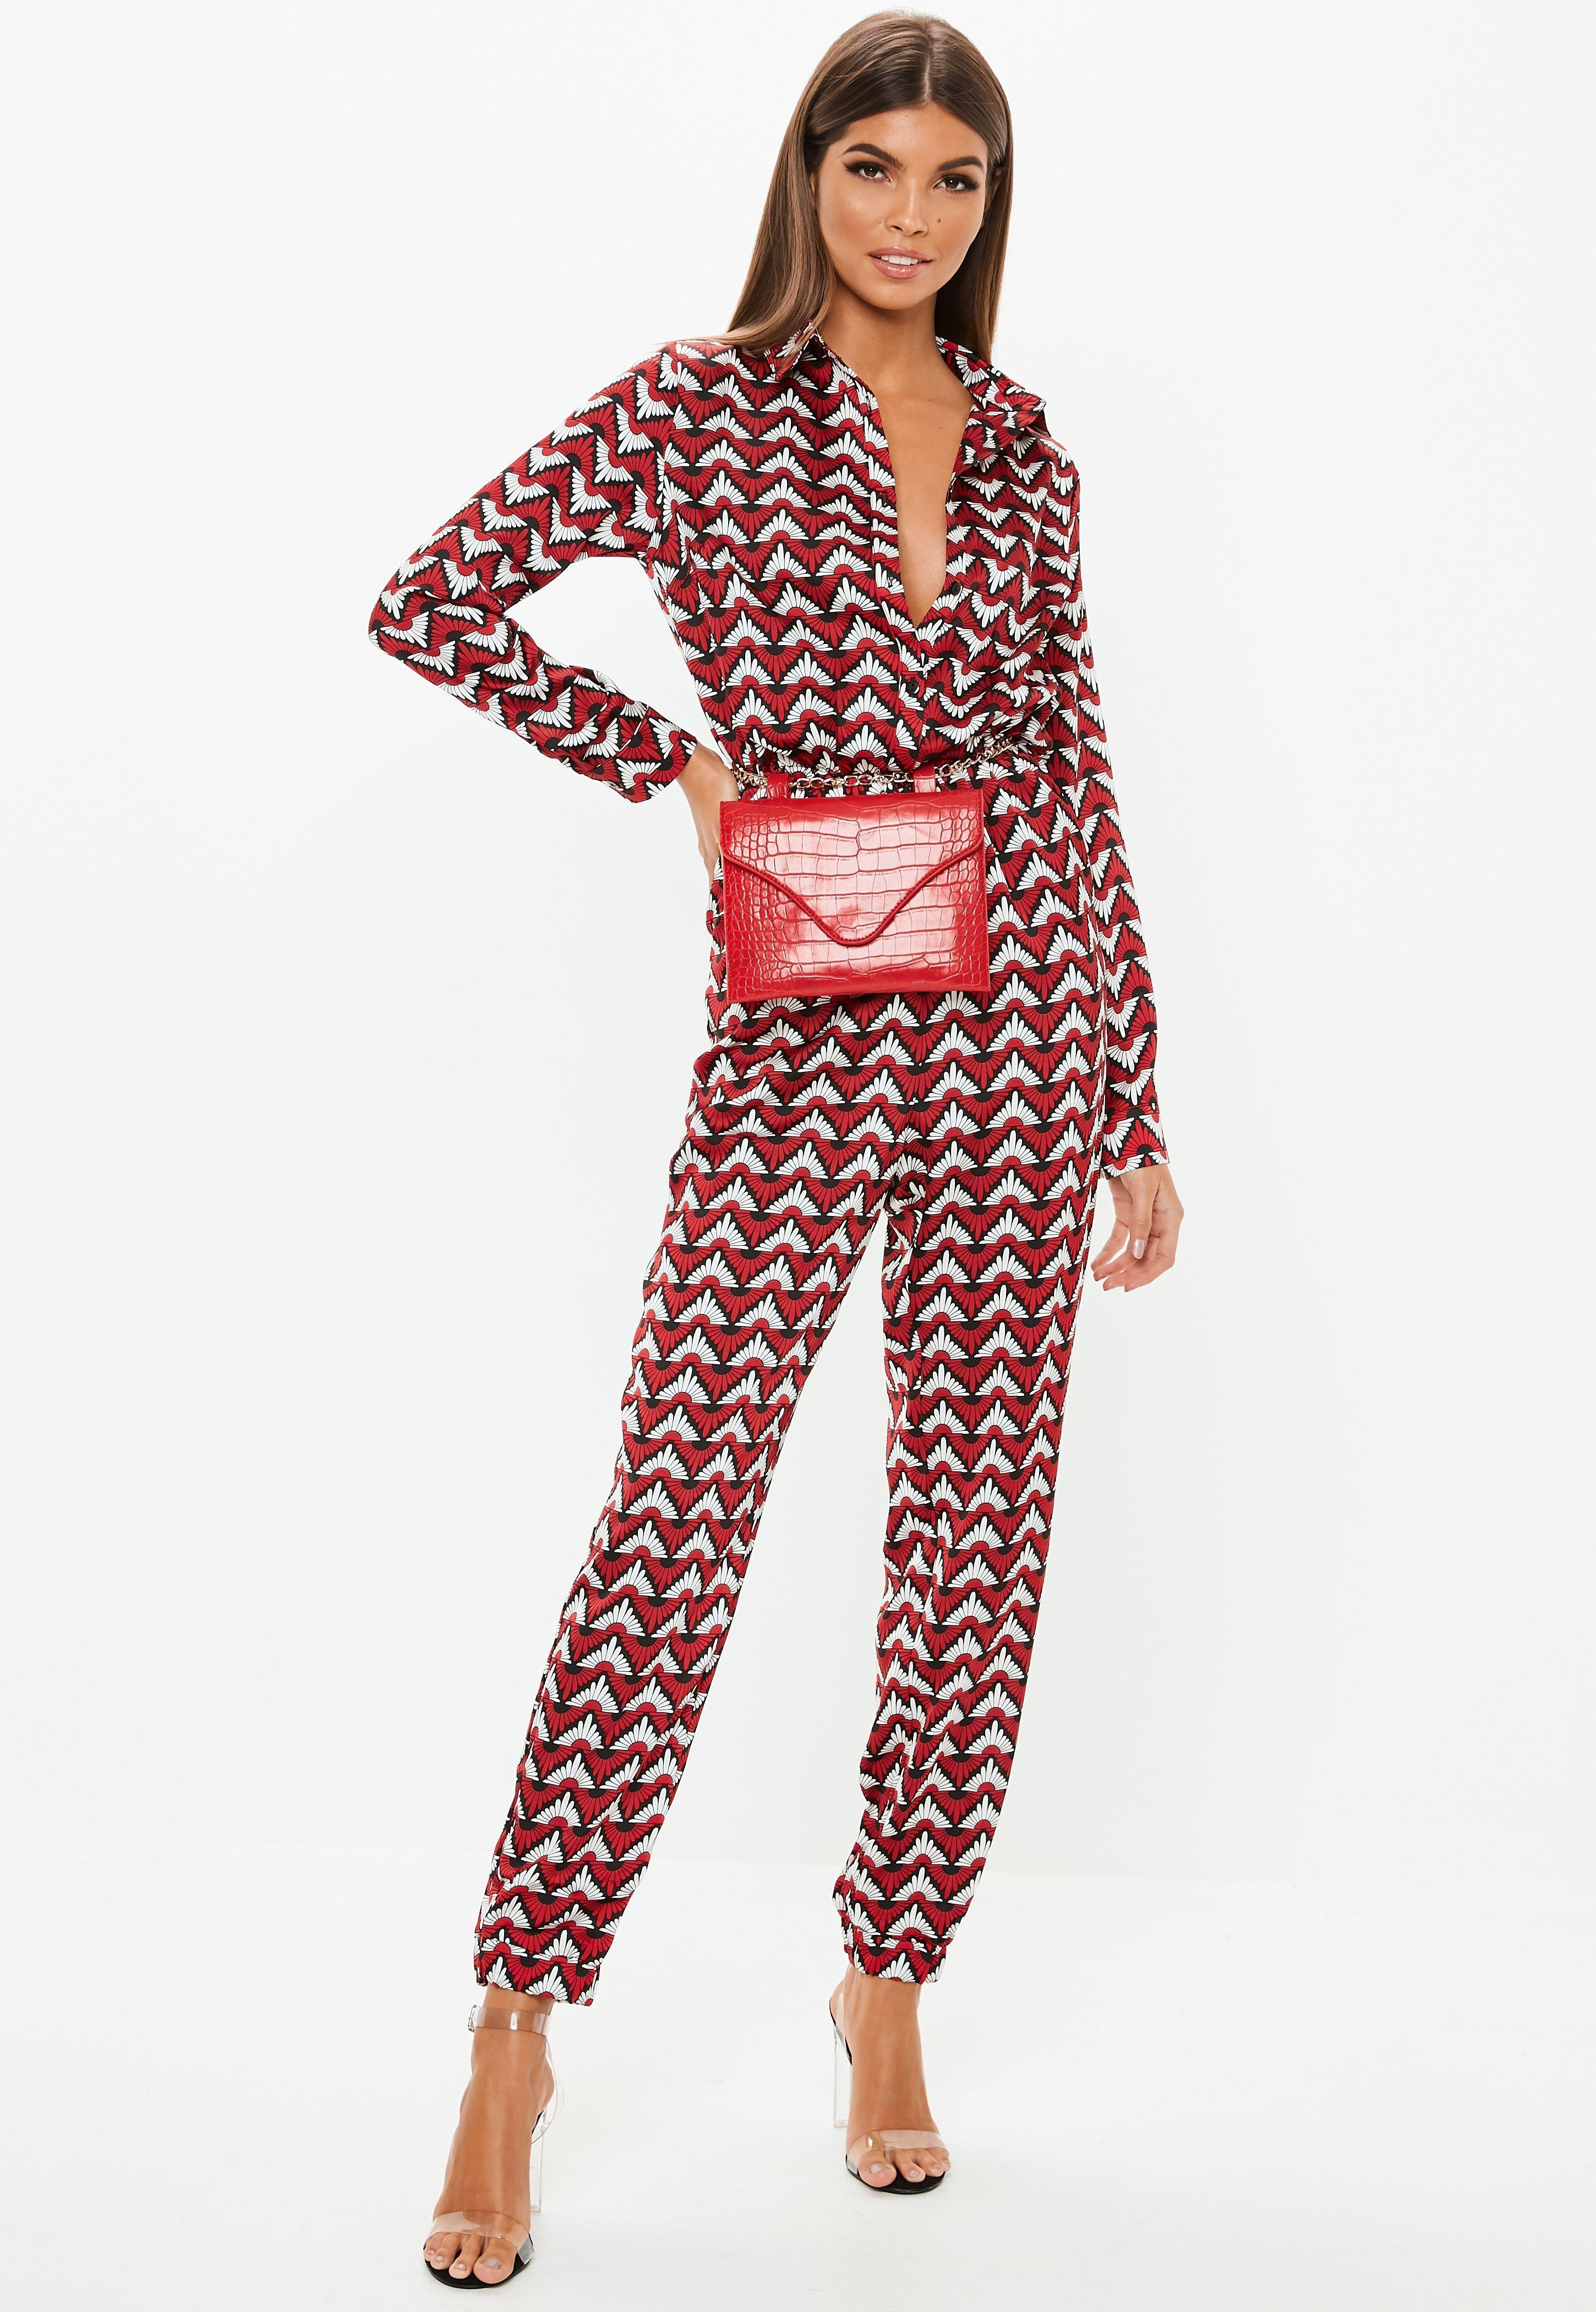 d67ab98ca6 Lyst - Missguided Red Geometric Print Utility Jumpsuit in Red